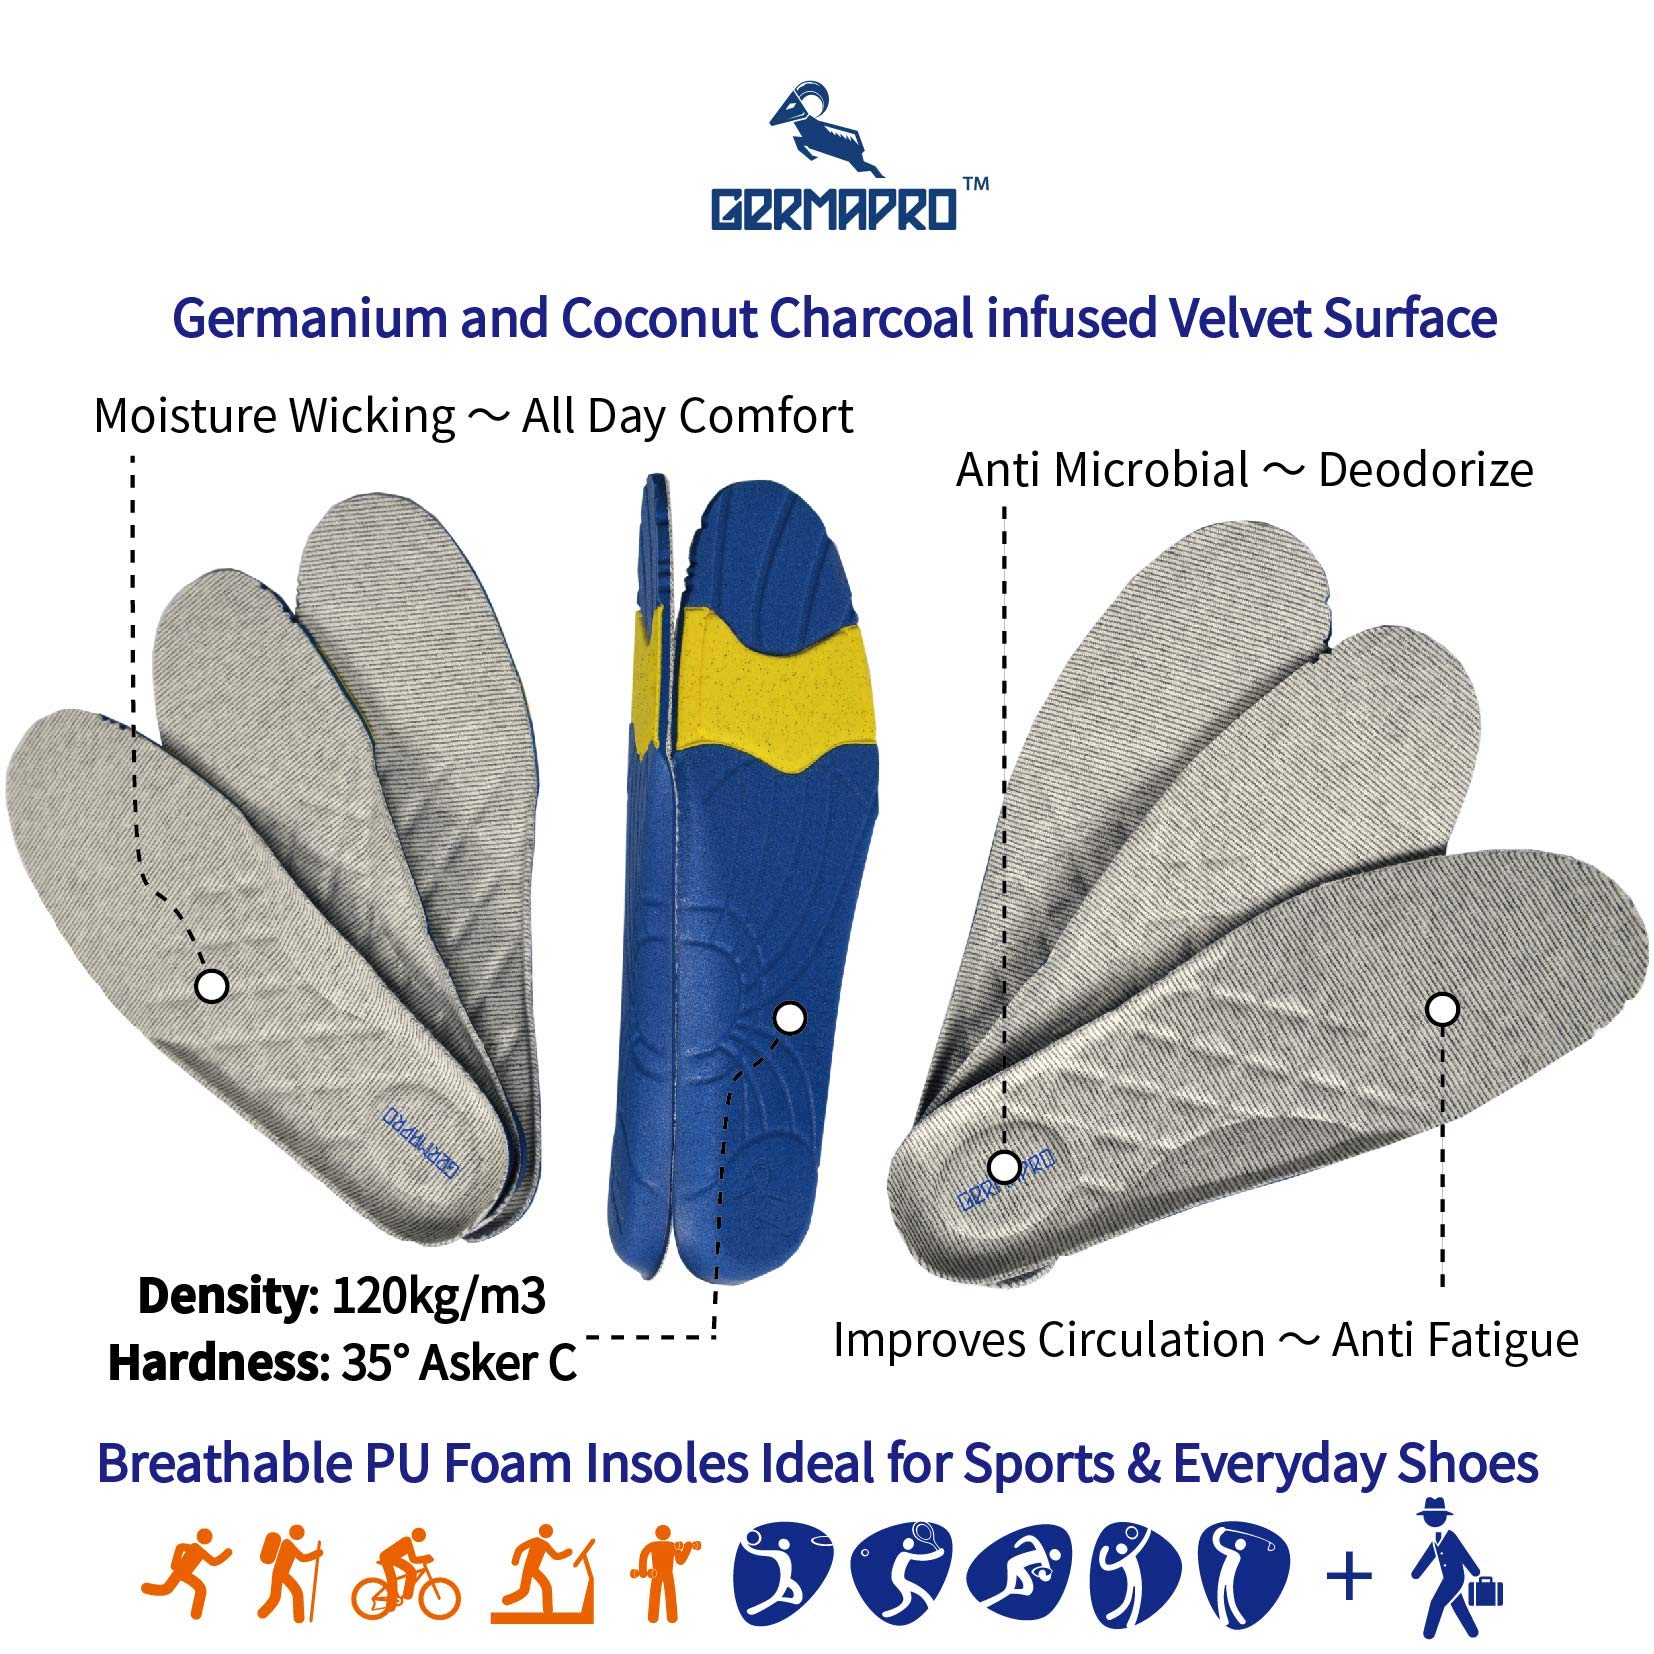 Mens Germanium Enabled Functional Anti-Fungal Anti-Odor PU Foam Insoles Circulation Inserts with Cushioned Arch Heel Support for Greater Comfort & Sole Pain Relief (9.5-2 Pairs) by GERMAPRO (Image #4)